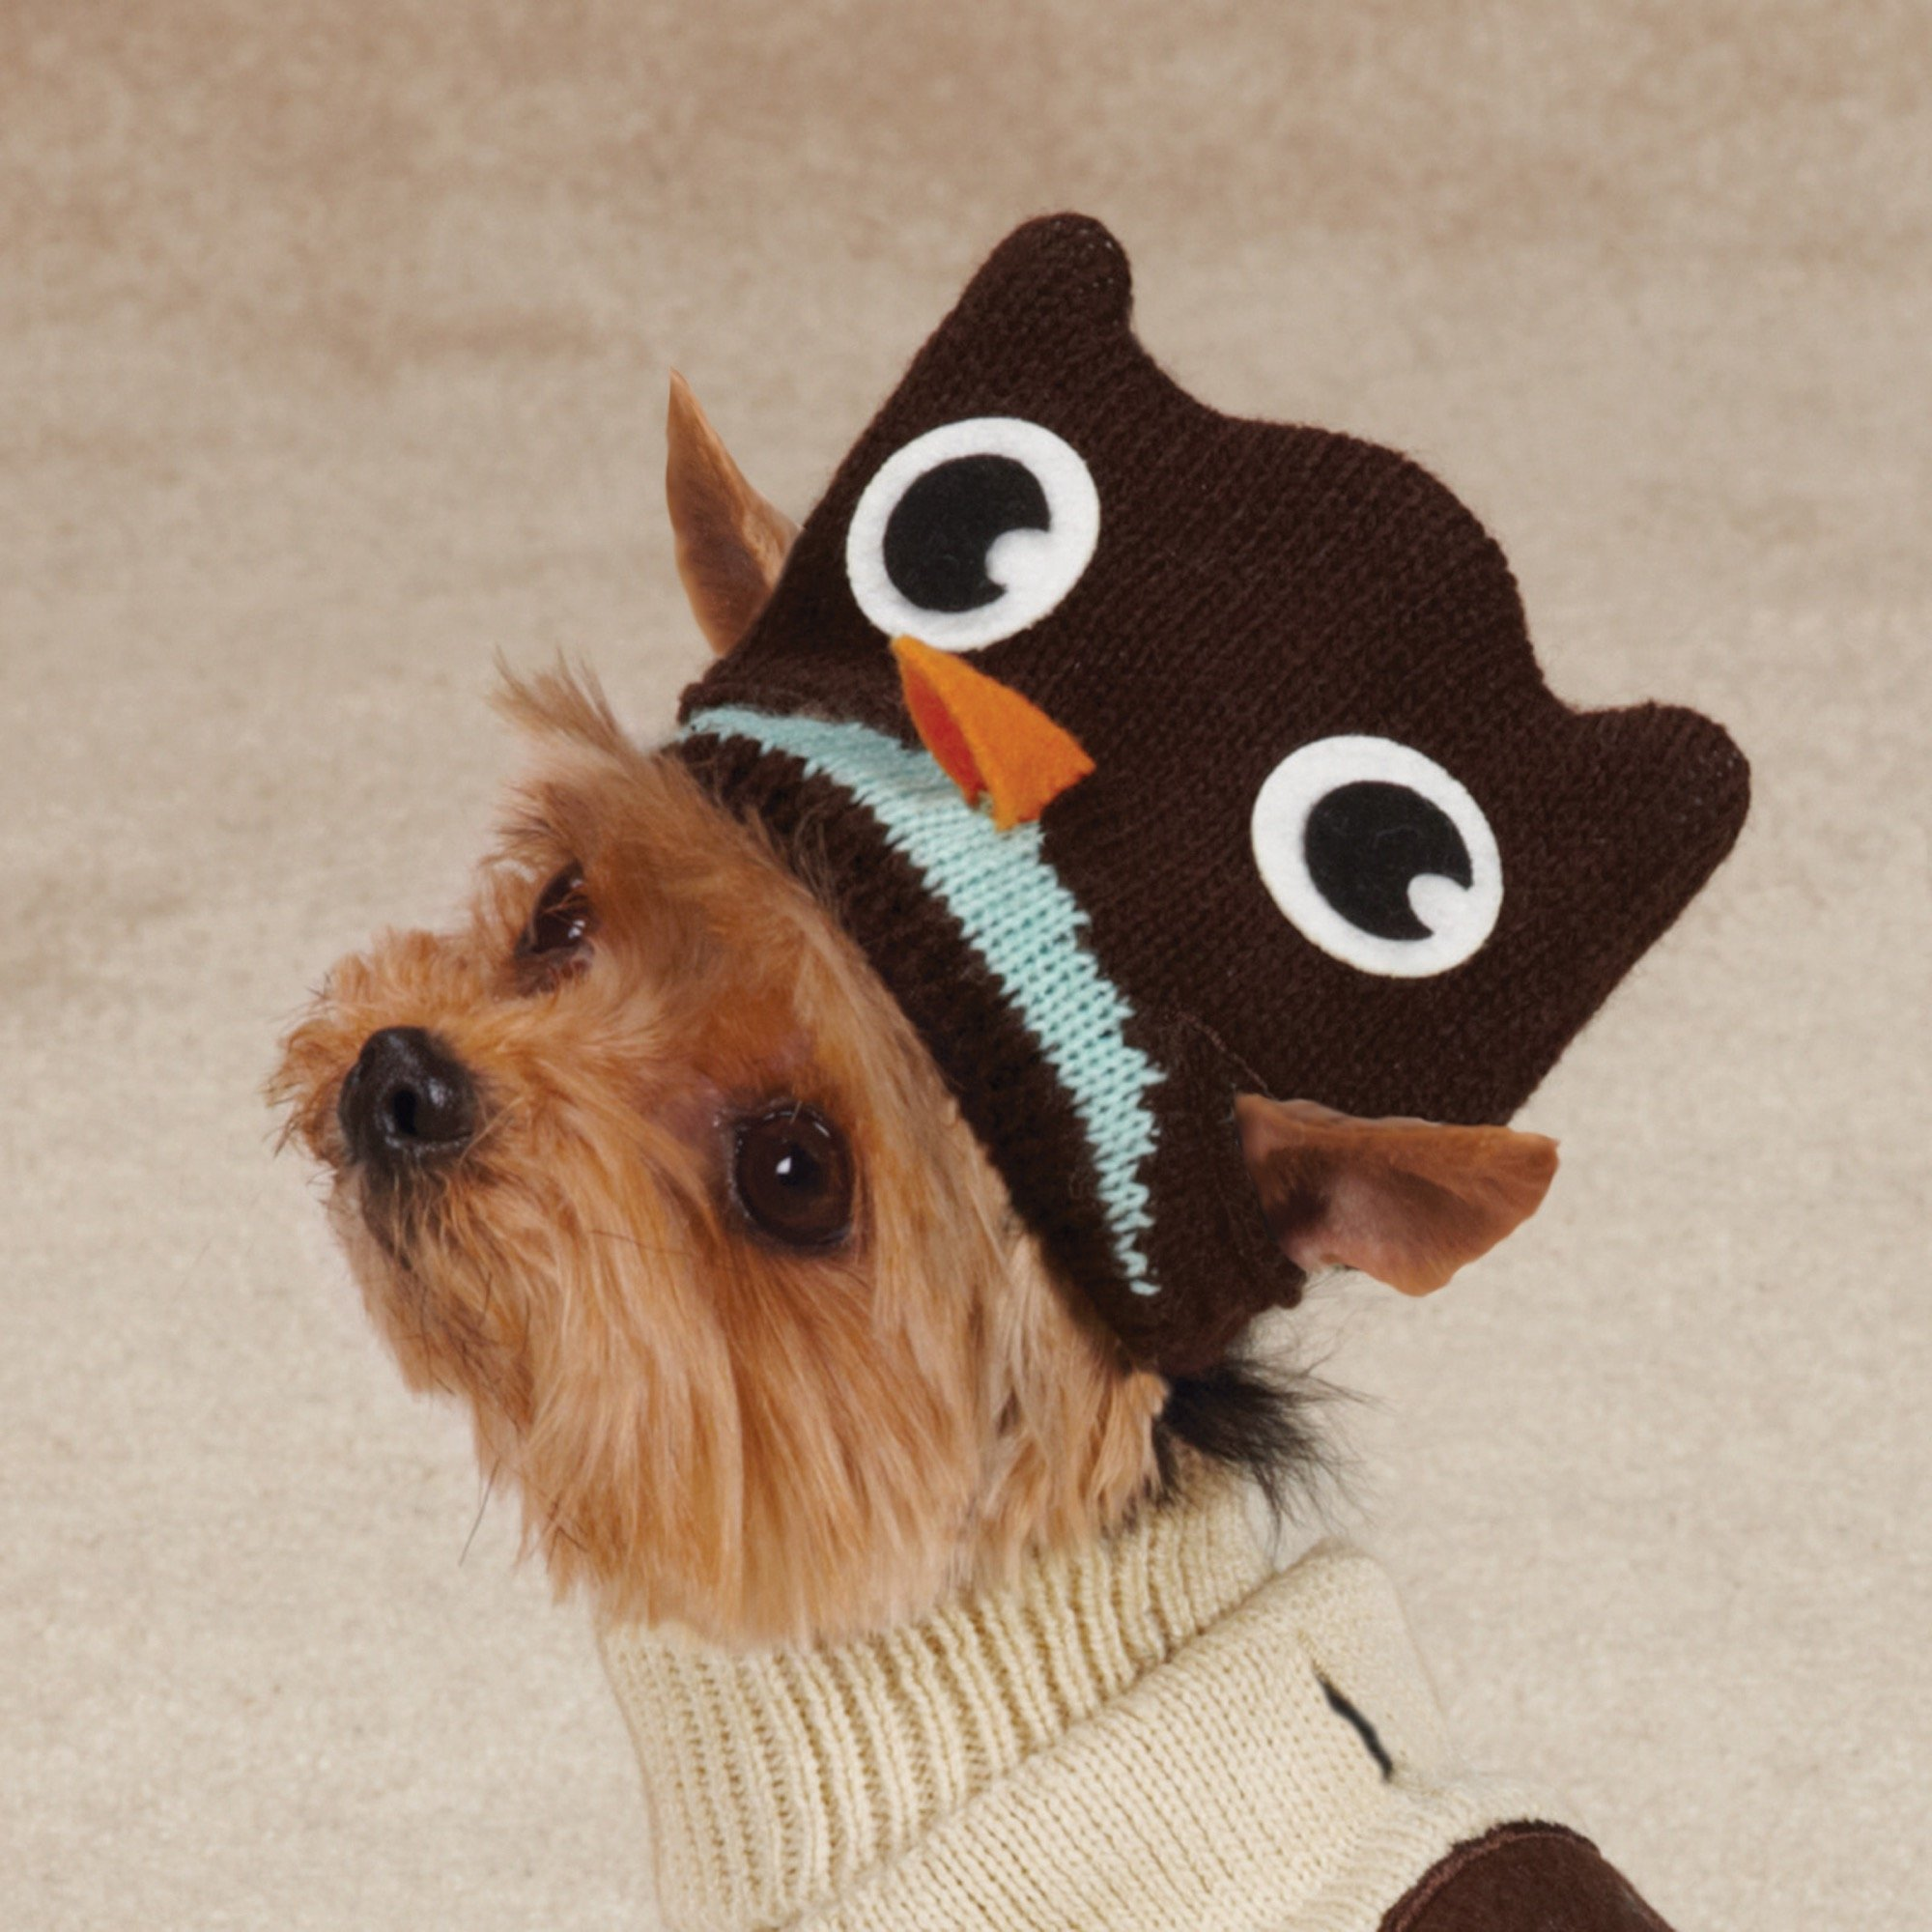 Zack & Zoey Piggy Back Pals Sweater and Hat Set for Dogs, 12'' Small, Owl by Zack & Zoey (Image #3)